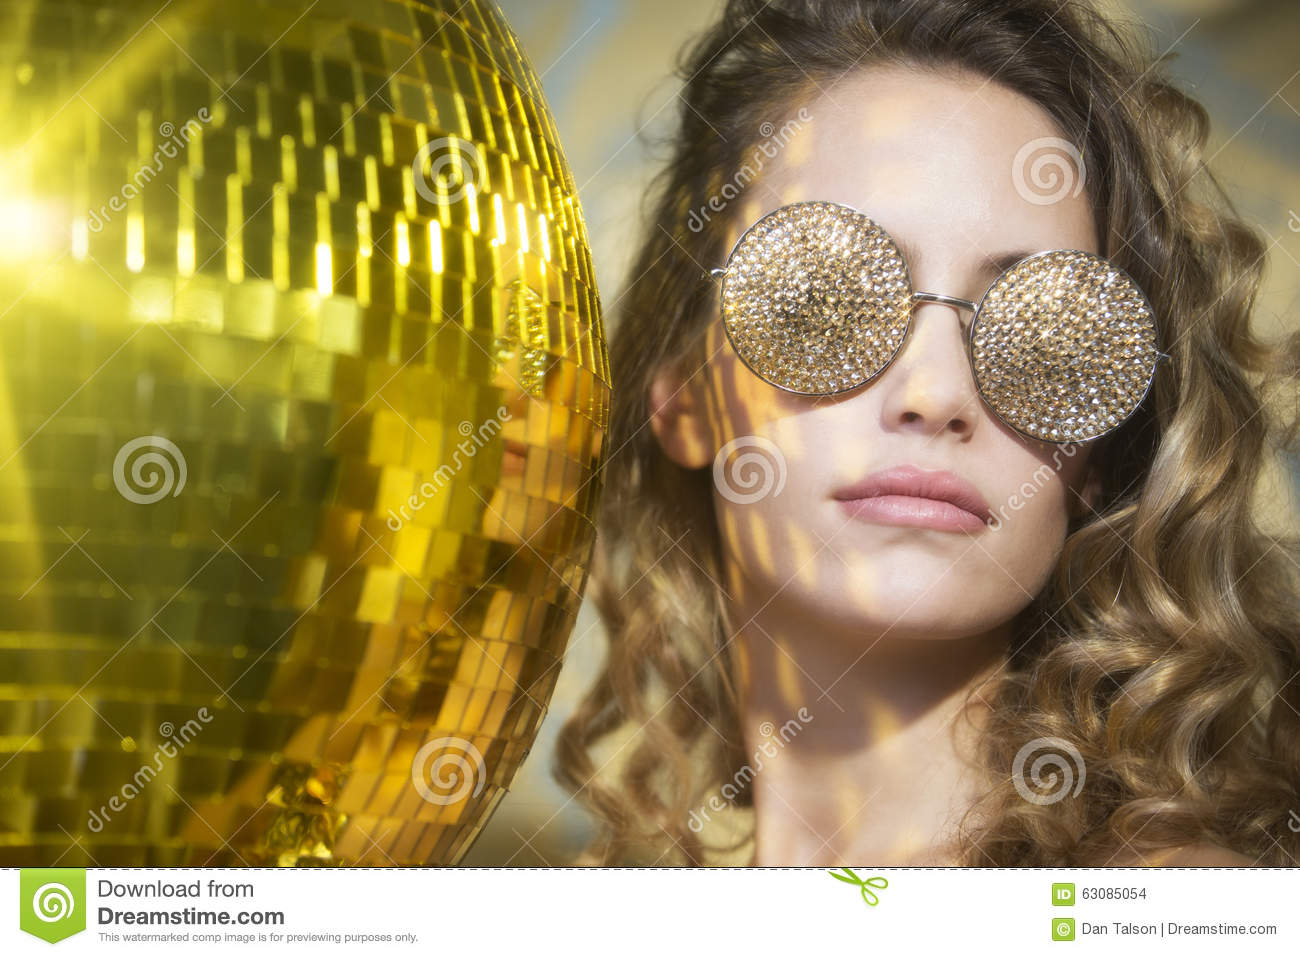 Download Femme Sexy Renversante De Tête De Discoball Photo stock - Image du boudoir, luxe: 63085054